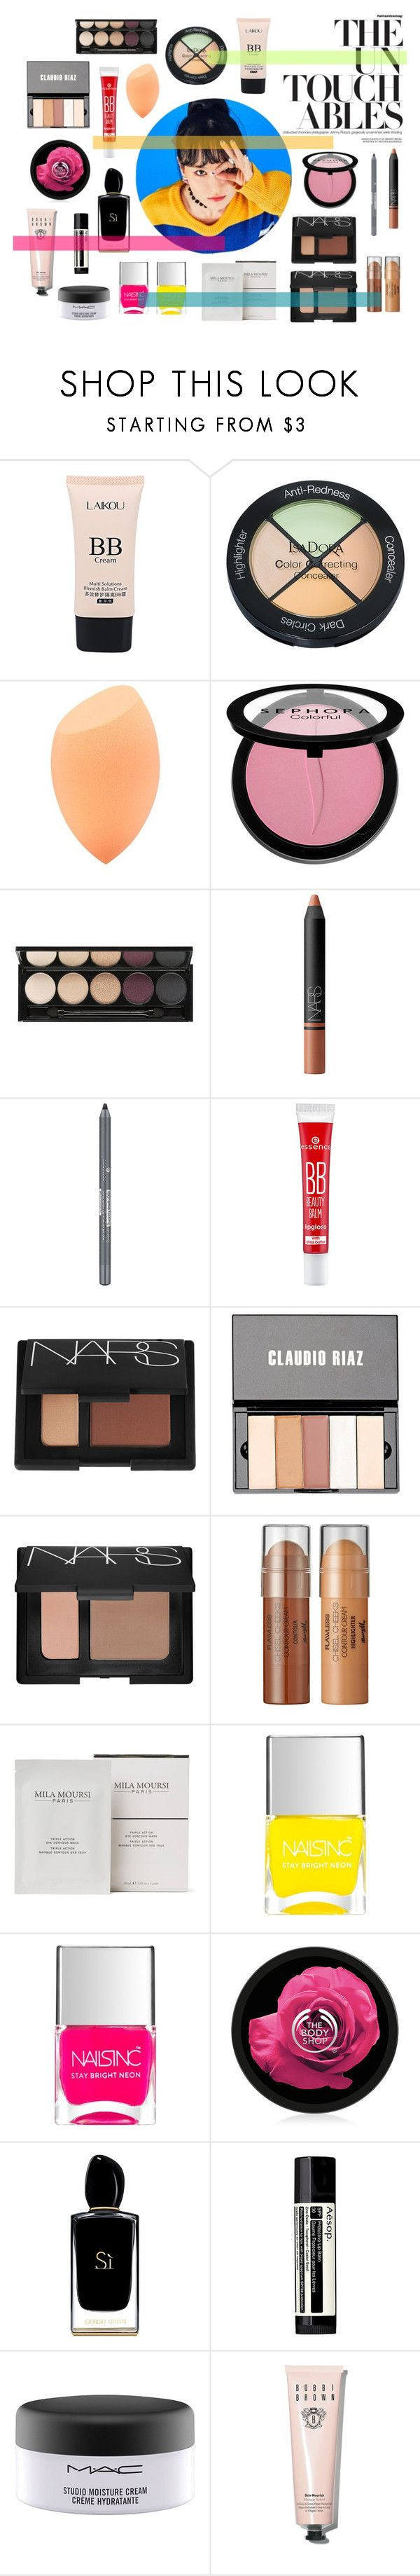 """""""Untouchable"""" by livefastdng ❤ liked on Polyvore featuring beauty, Isadora, Sephora Collection, Witchery, NARS Cosmetics, Claudio Riaz, Space NK, Nails Inc., Giorgio Armani and Aesop"""